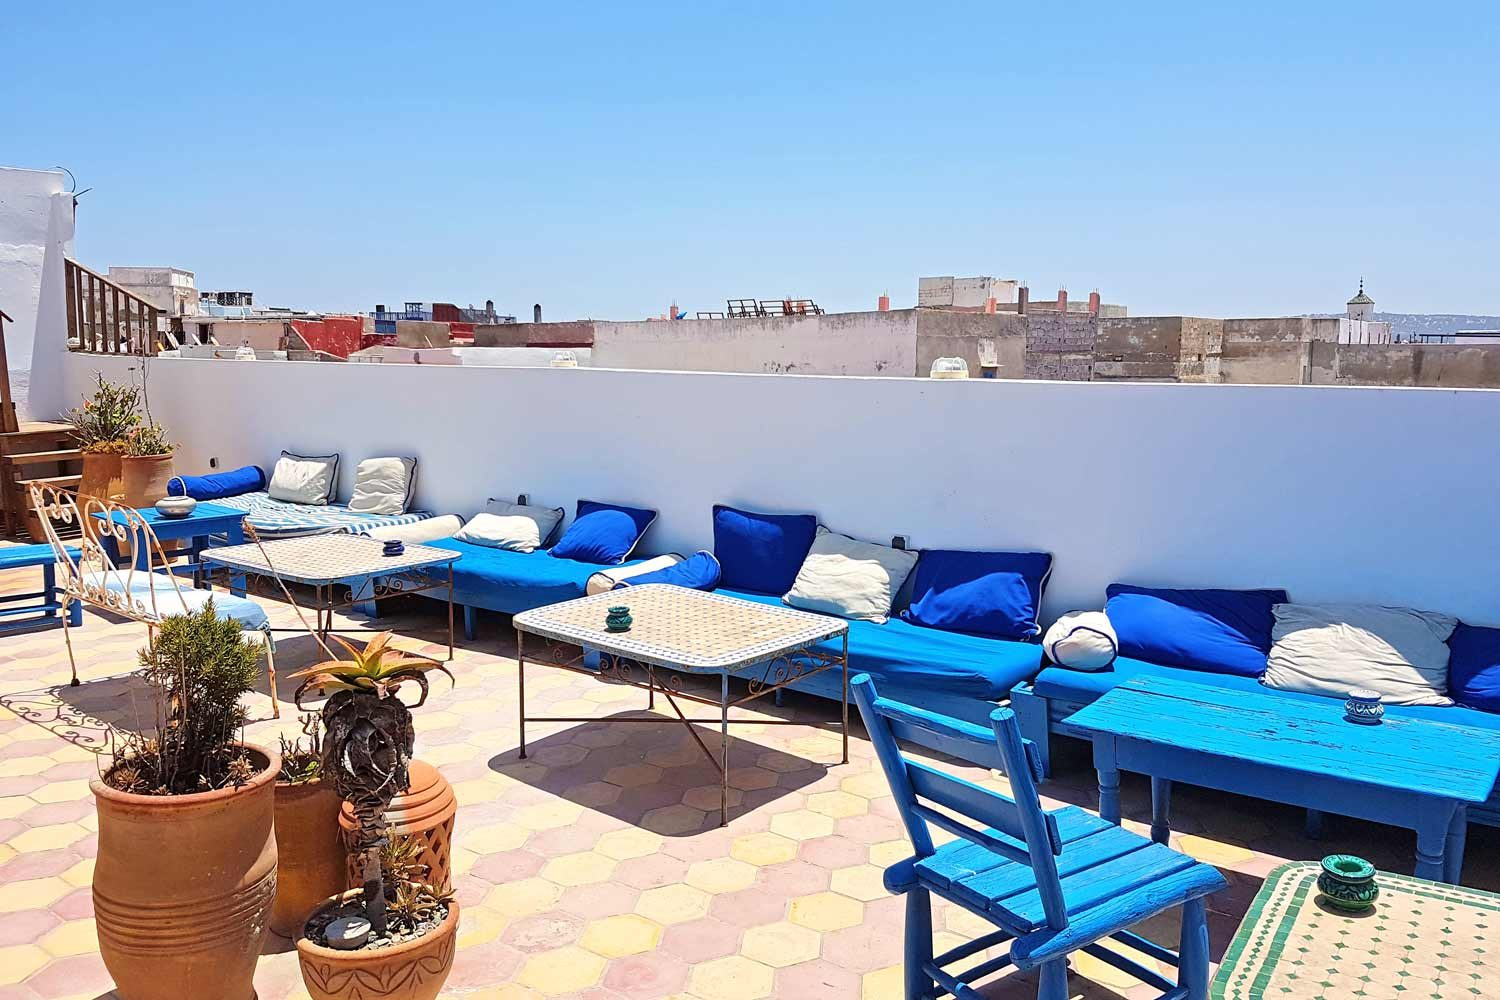 Terasse des Riads Le Grand Large in Essaouira